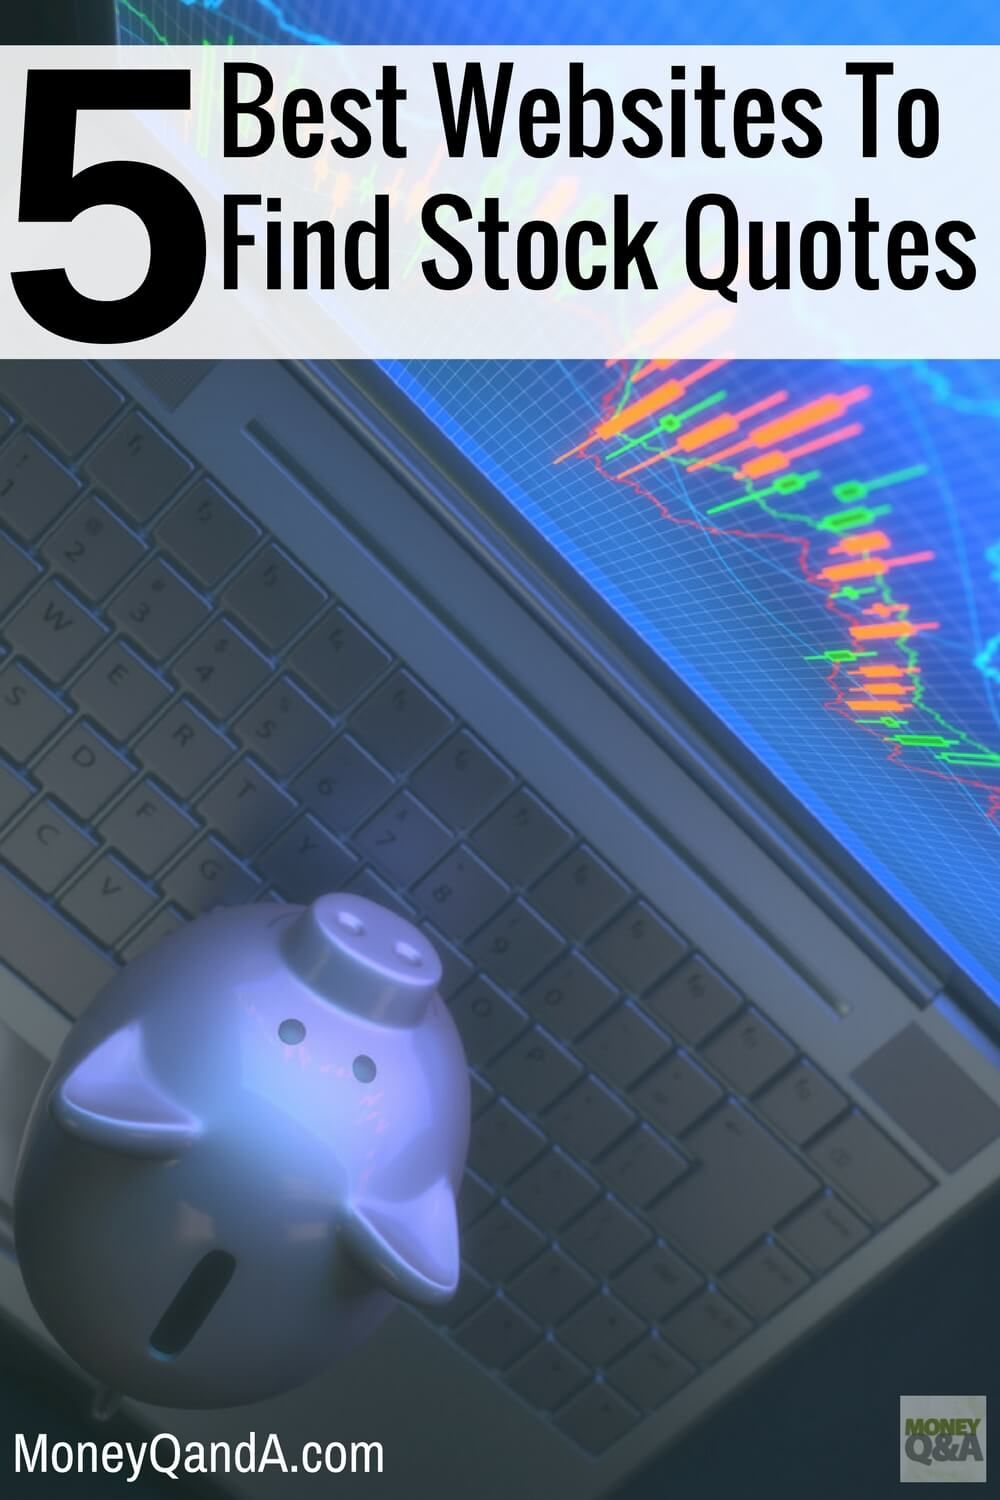 Free Stock Quote The Best Websites To Find Stock Quotes  Stock Quotes Stock